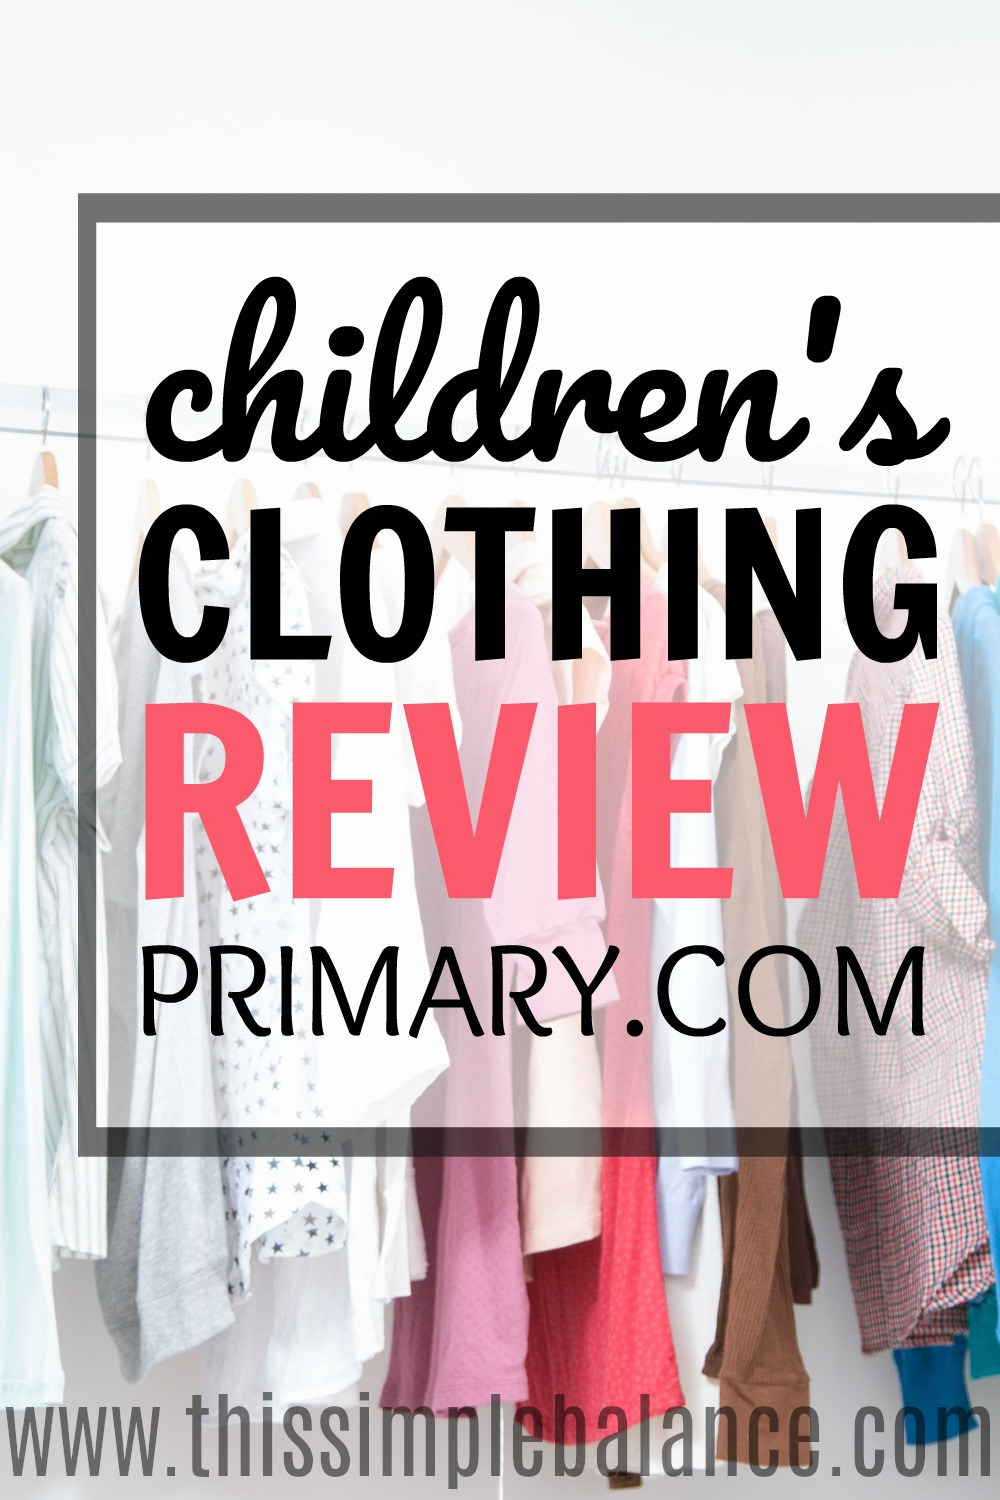 Primary Clothing Review: Are you tired of graphics and text and messages you don't want your kids wearing emblazoned on their chests? Yeah, me too. That's why I love Primary.com: simple, affordable kid's clothing - basic styles with classic colors. No more questionable slogans.